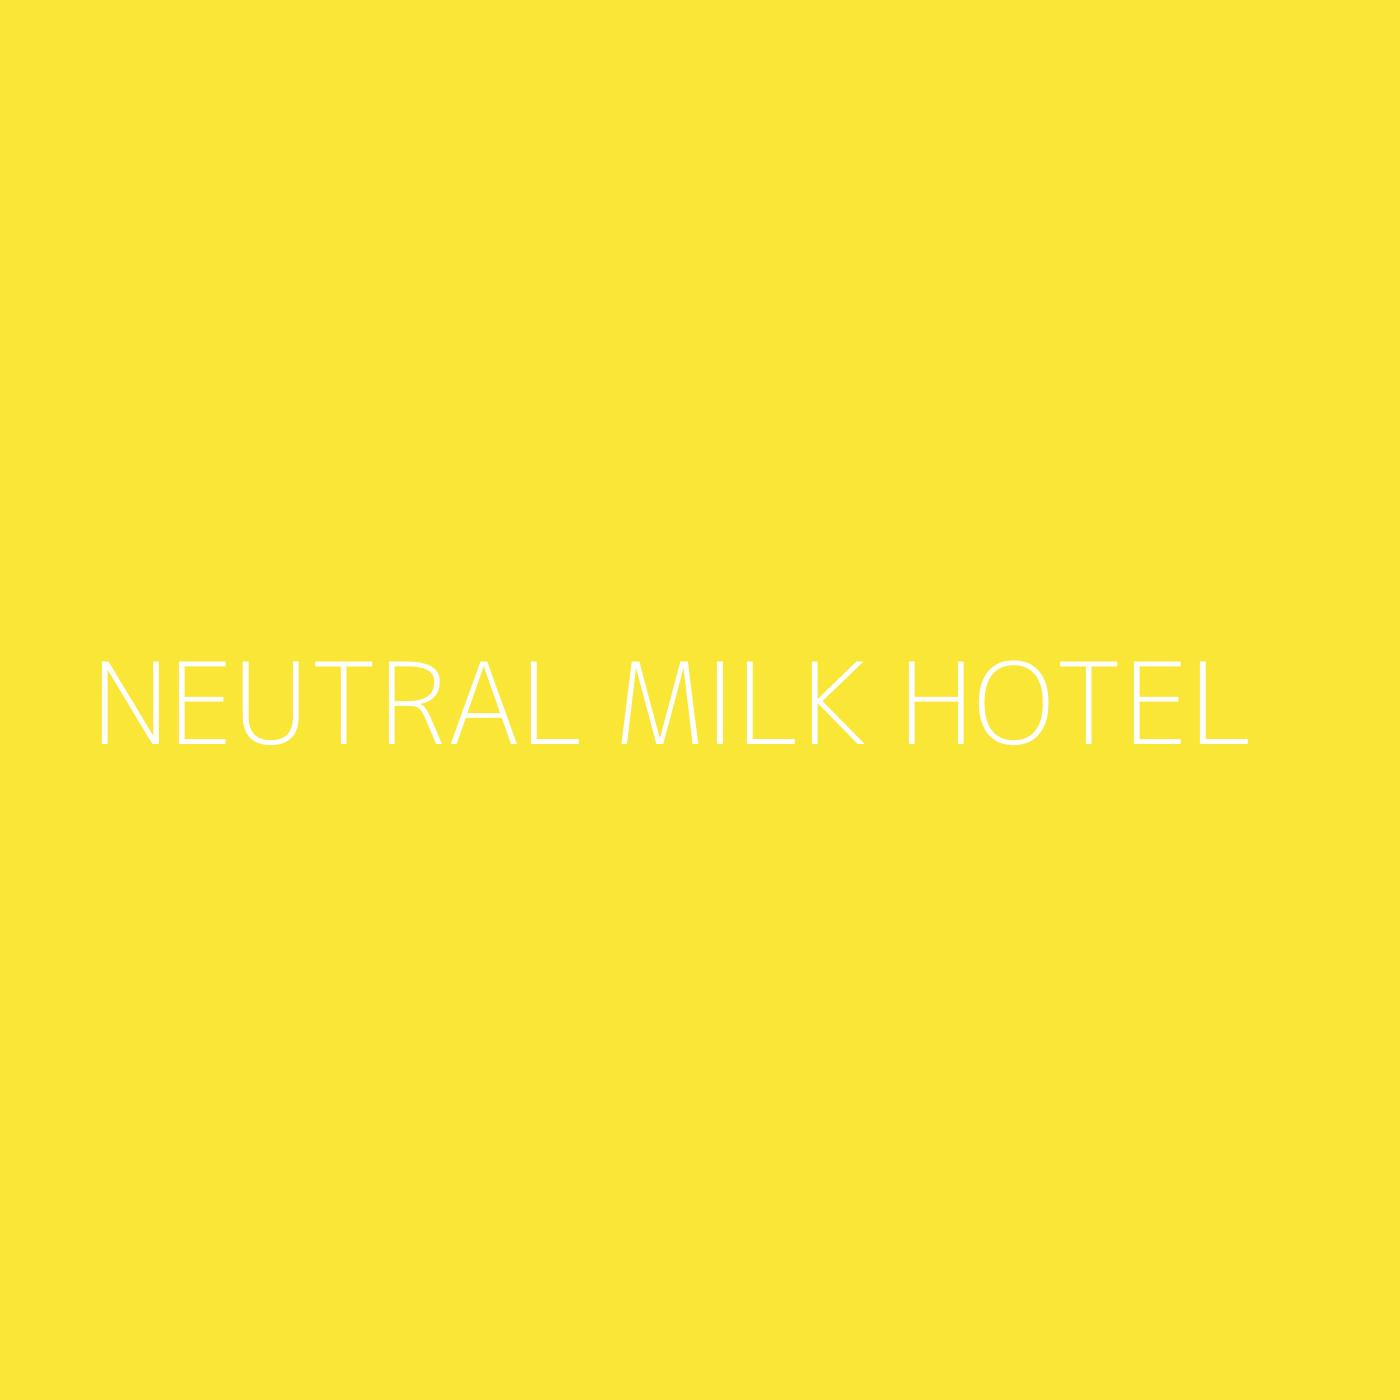 Neutral Milk Hotel Playlist Artwork